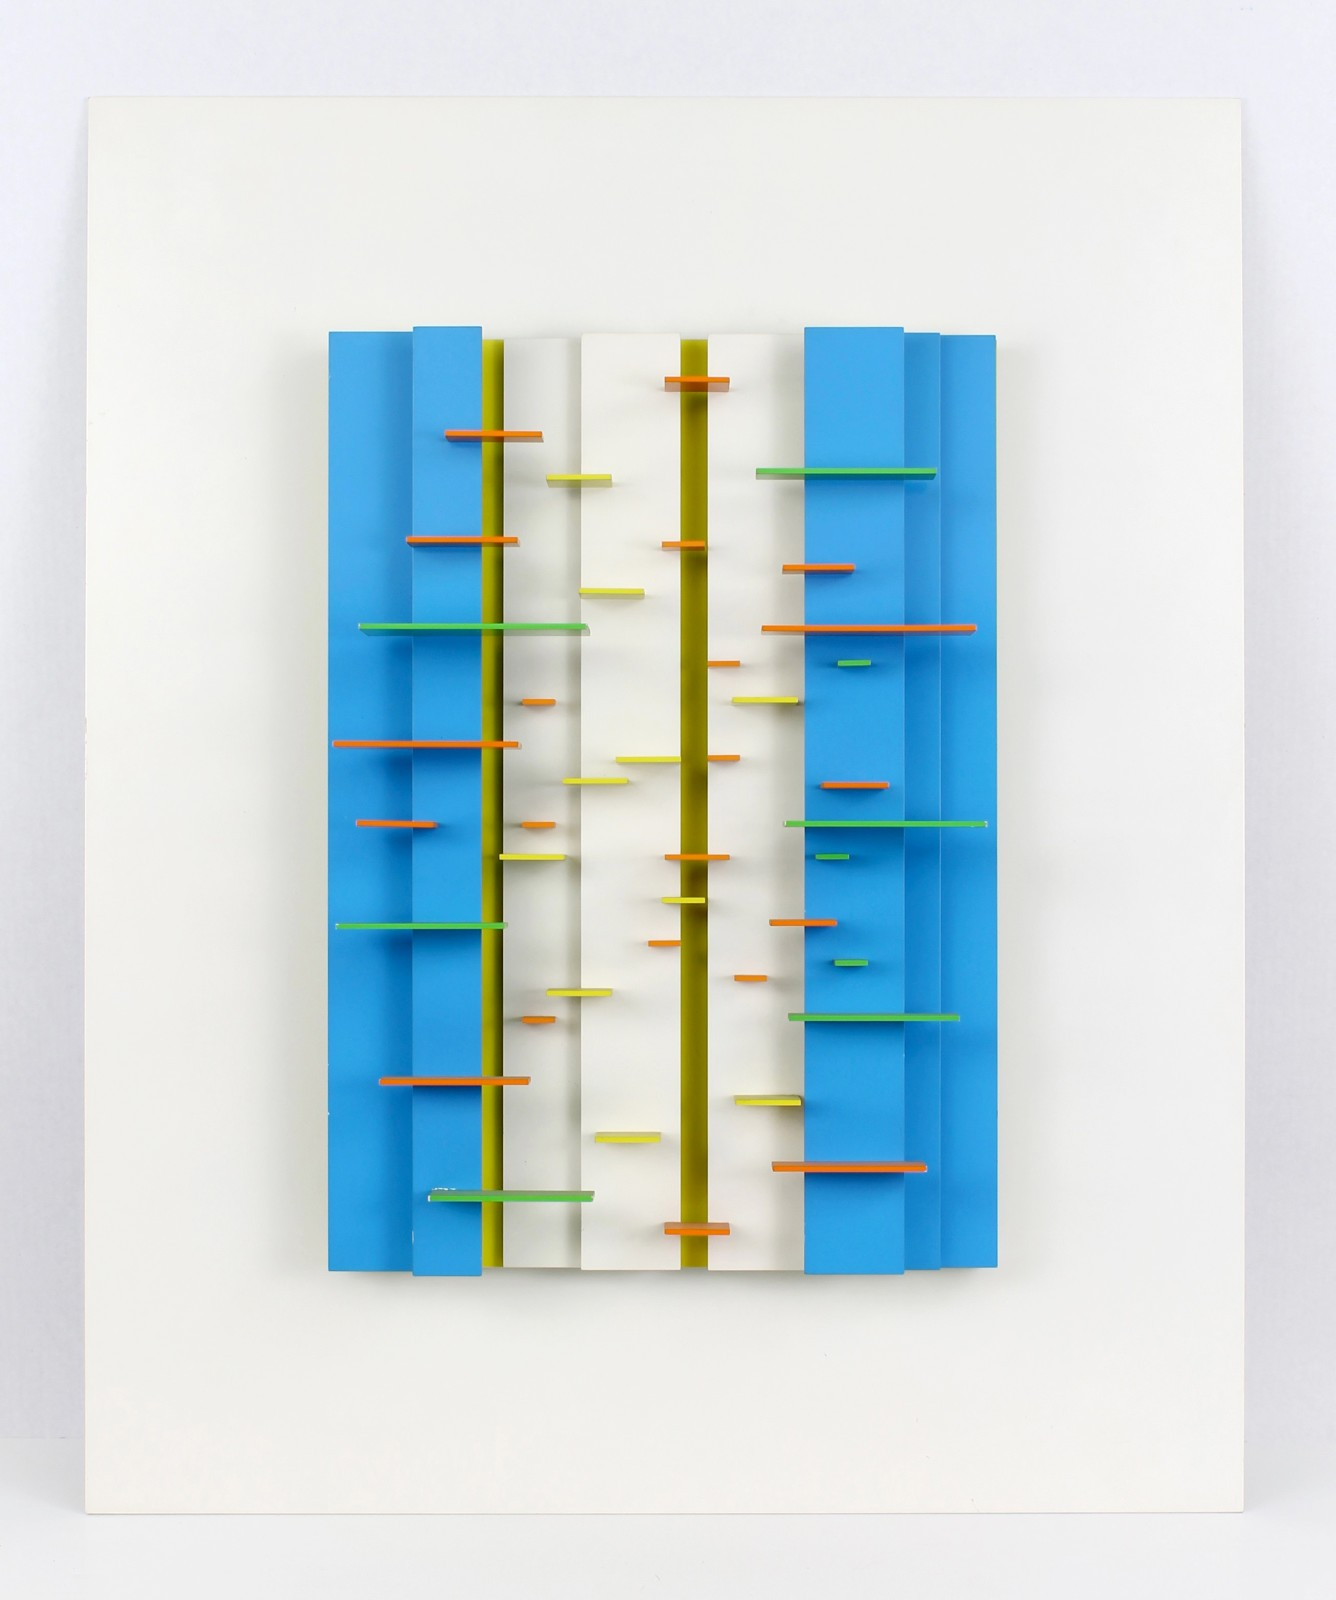 """<span class=""""link fancybox-details-link""""><a href=""""/artists/168-charles-biederman/works/10295/"""">View Detail Page</a></span><div class=""""artist""""><span class=""""artist""""><strong>CHARLES BIEDERMAN</strong></span></div><div class=""""title""""><em>#50 Red Wing</em>, 1953-82</div><div class=""""signed_and_dated"""">Signed on the reverse</div><div class=""""medium"""">Painted aluminium</div><div class=""""dimensions"""">86 x 70.5 x 11.5 cm<br /> 34 x 27 ¾ x 4 ½ inches</div>"""